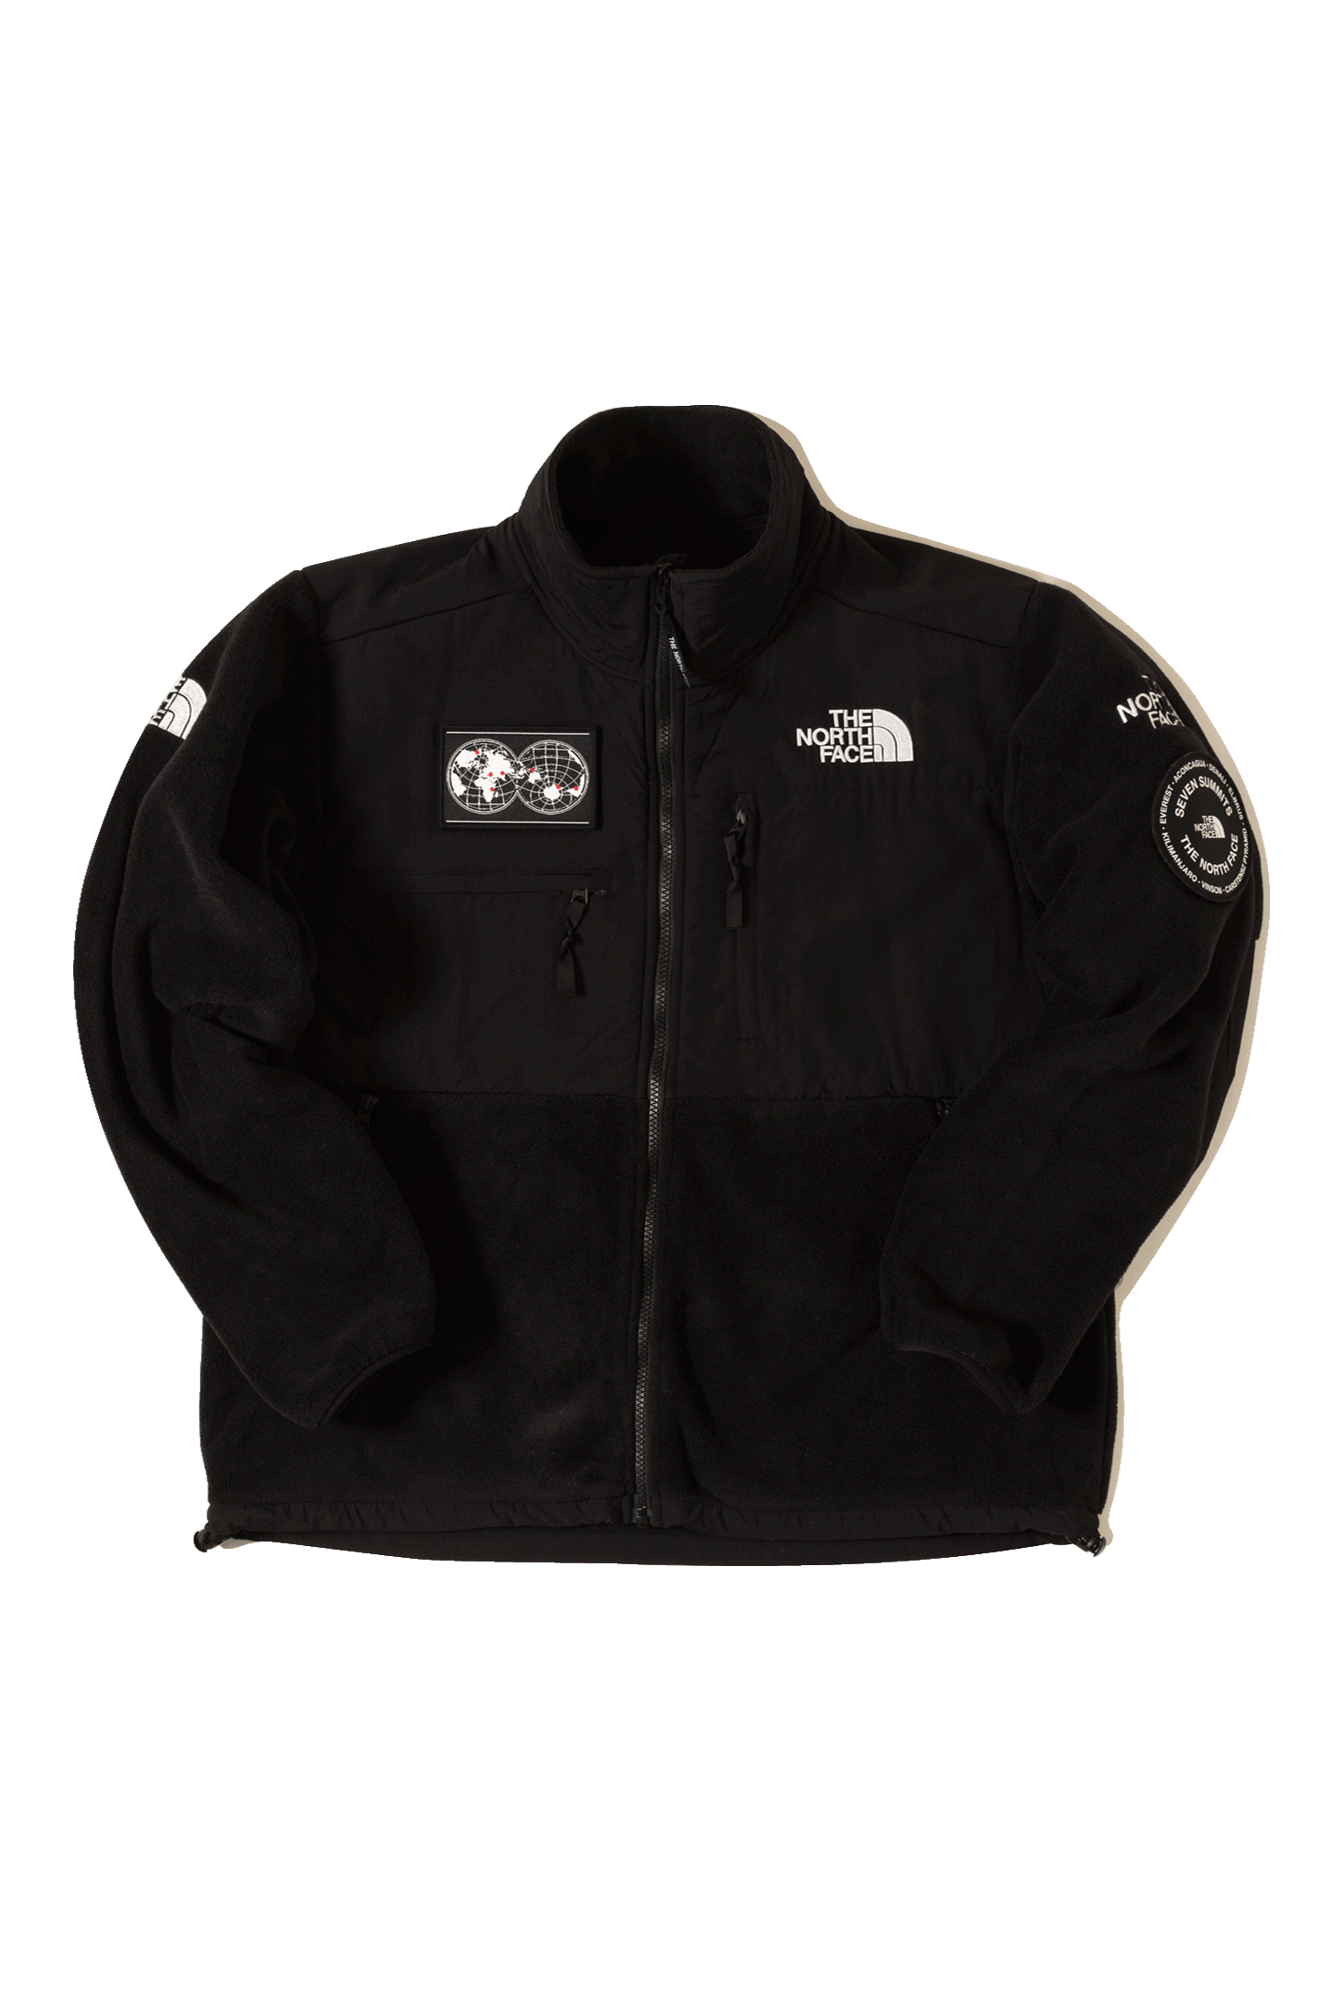 7SE 95 Retro Denali Jacket Black